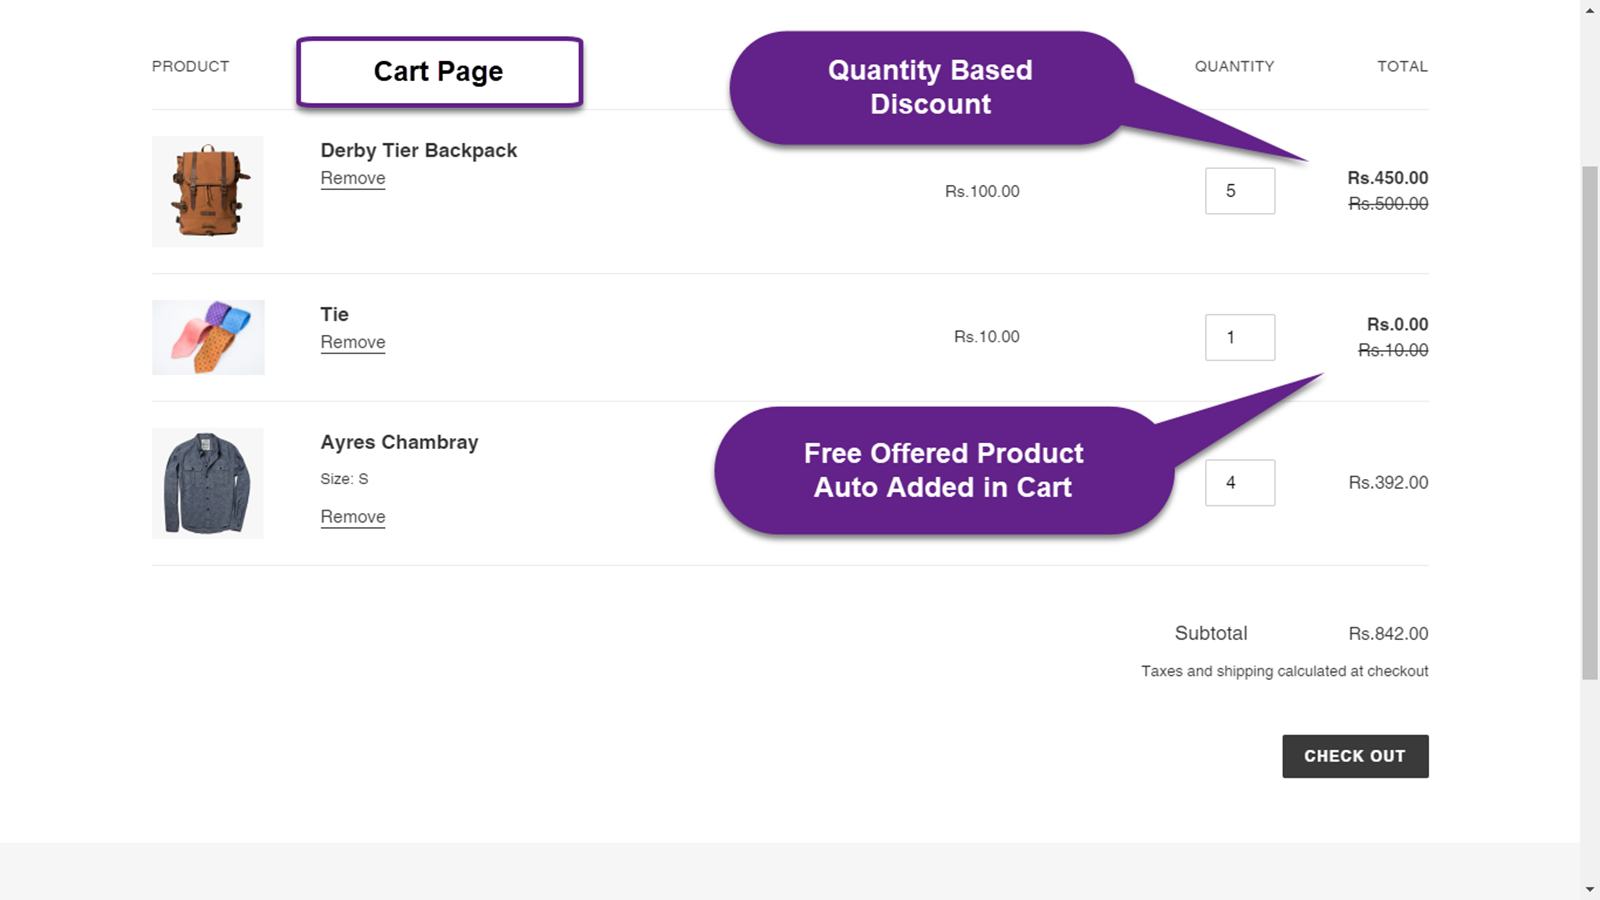 Discounts & Free Gift Displayed on Cart Page